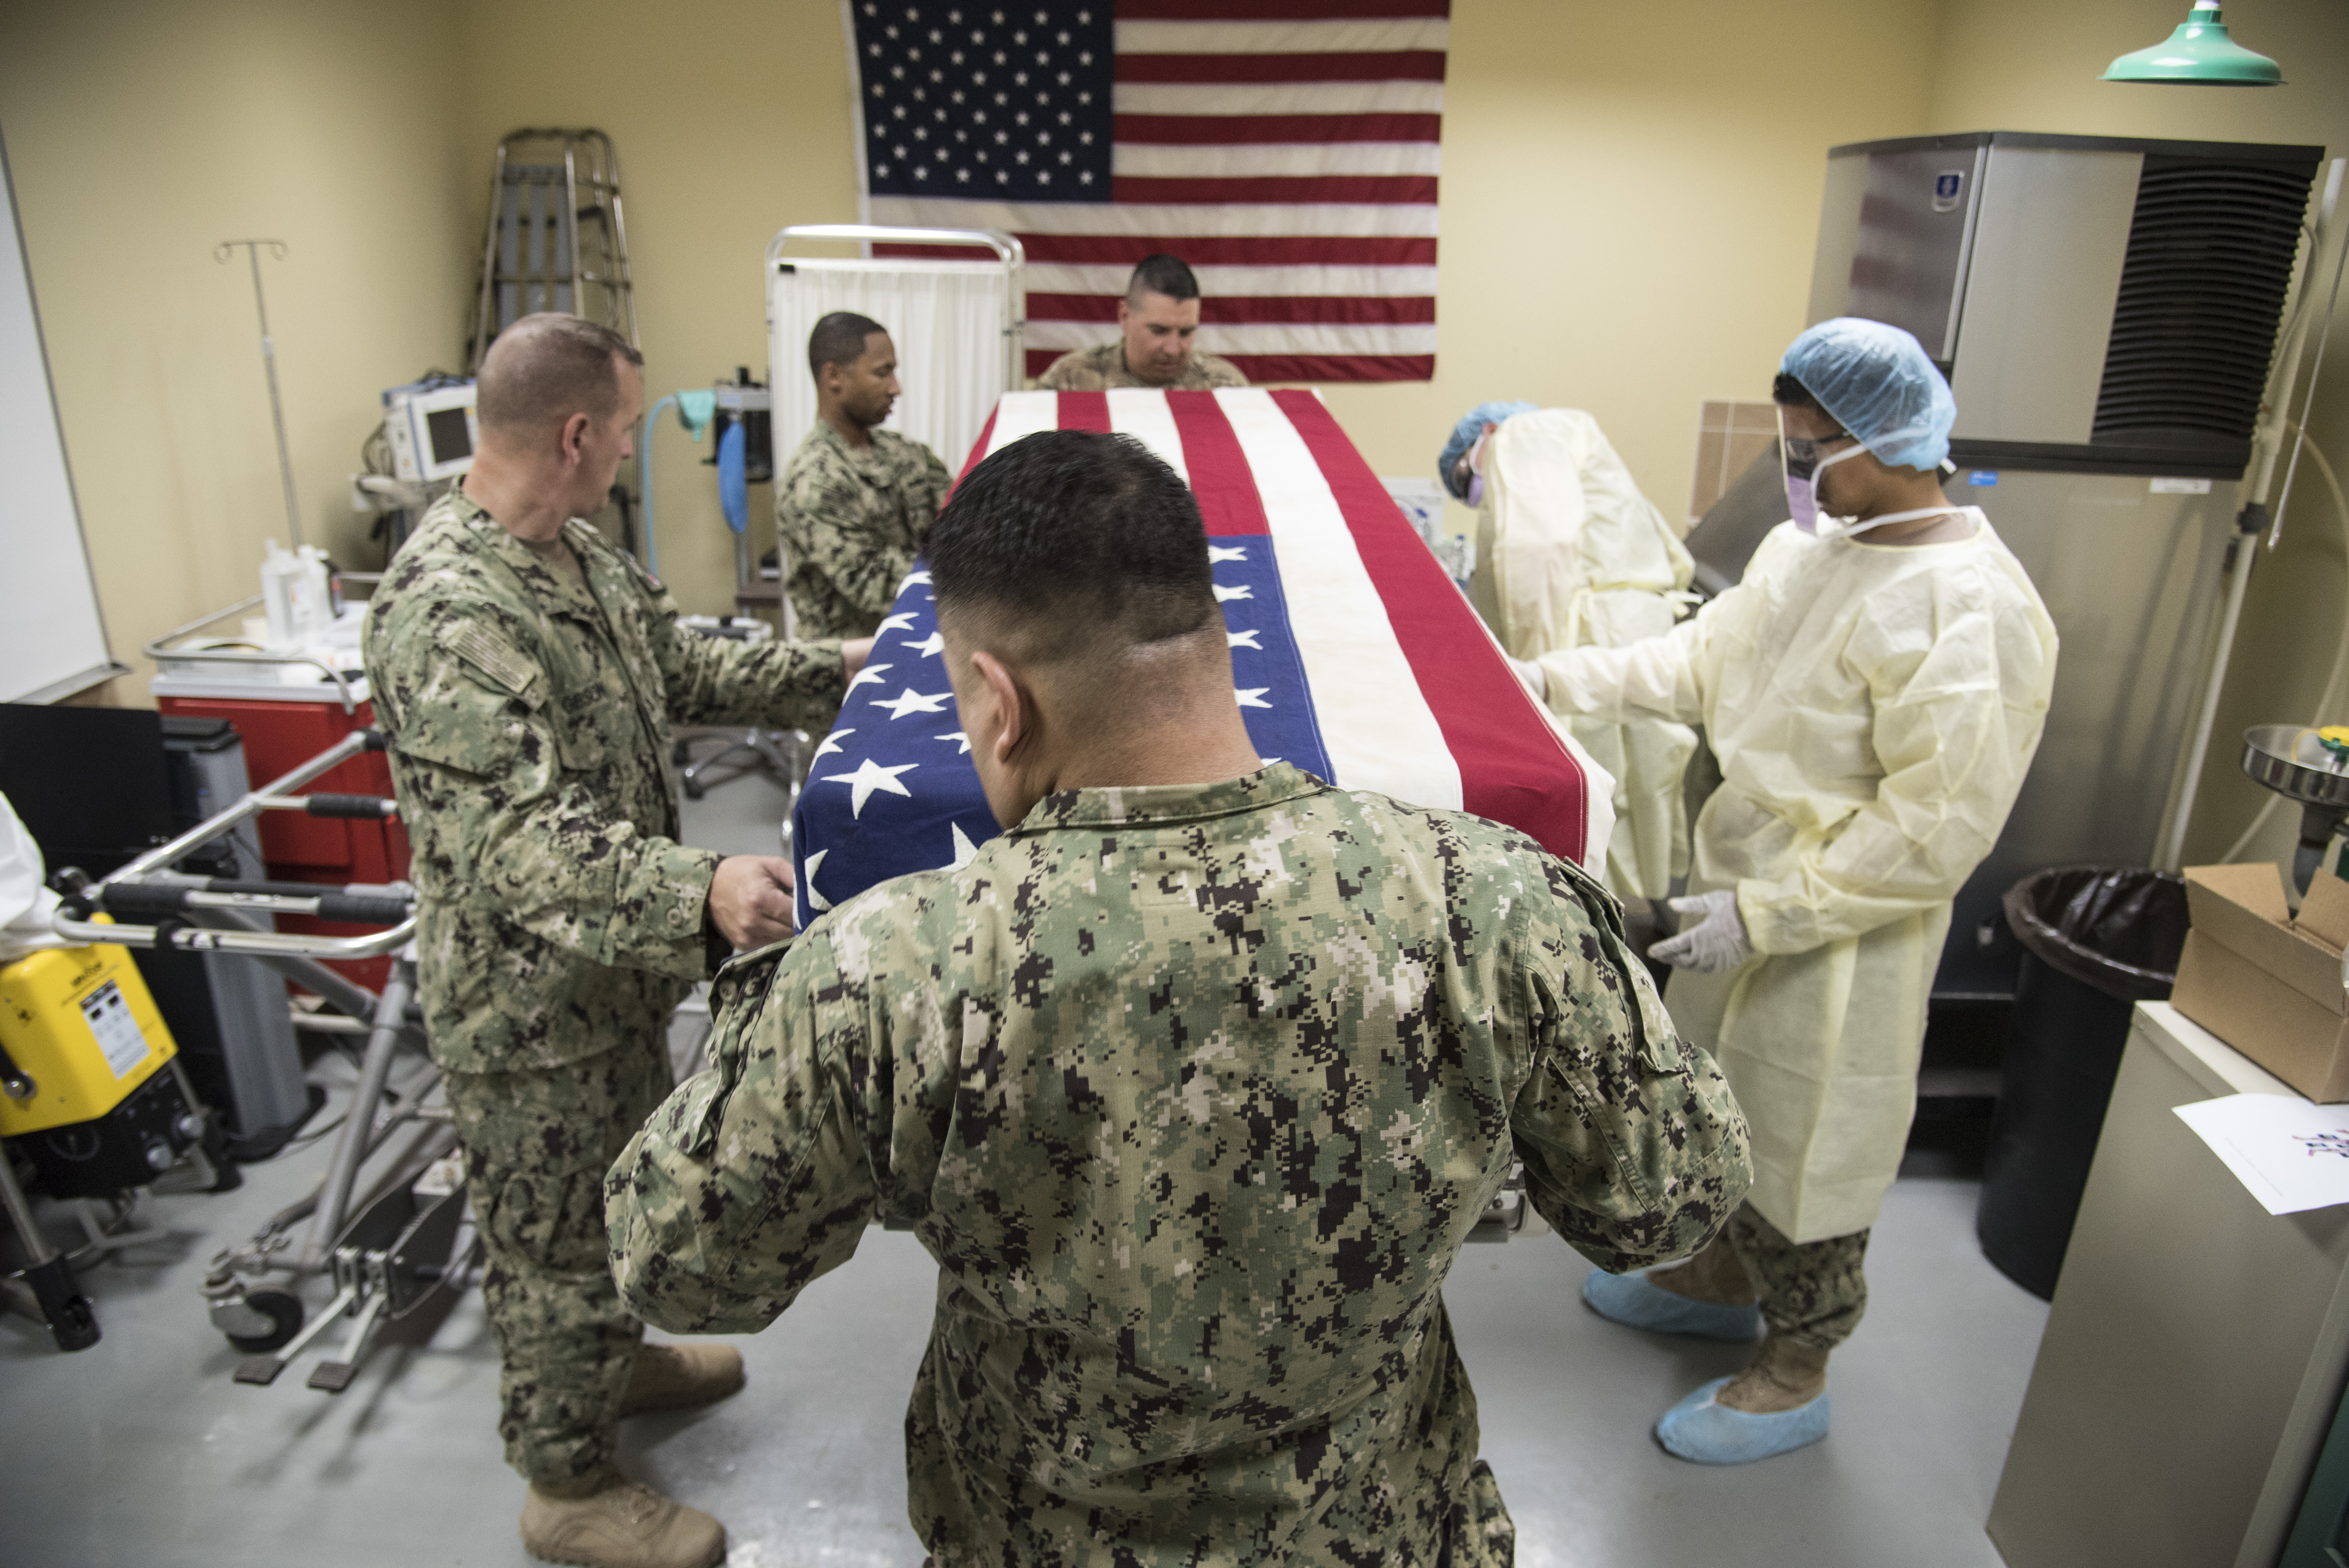 CAMP LEMONNIER, Djibouti – Volunteers from the U.S. Navy, Marine Corps, and Army, place an American Flag-dressed, temperature-controlled casket cover over mock human remains during a mass casualty exercise, June 1, 2016, at Camp Lemonnier, Djibouti. Services personnel from the 870th Air Expeditionary Squadron, along with volunteers from the U.S. Navy, Marines, Army and Air Force tested their skills in search and recovery and mortuary affairs collection point processes during a mock vehicle-borne improvised explosive device detonation resulting in two casualties. (U.S. Air Force photo by Staff Sgt. Tiffany DeNault)